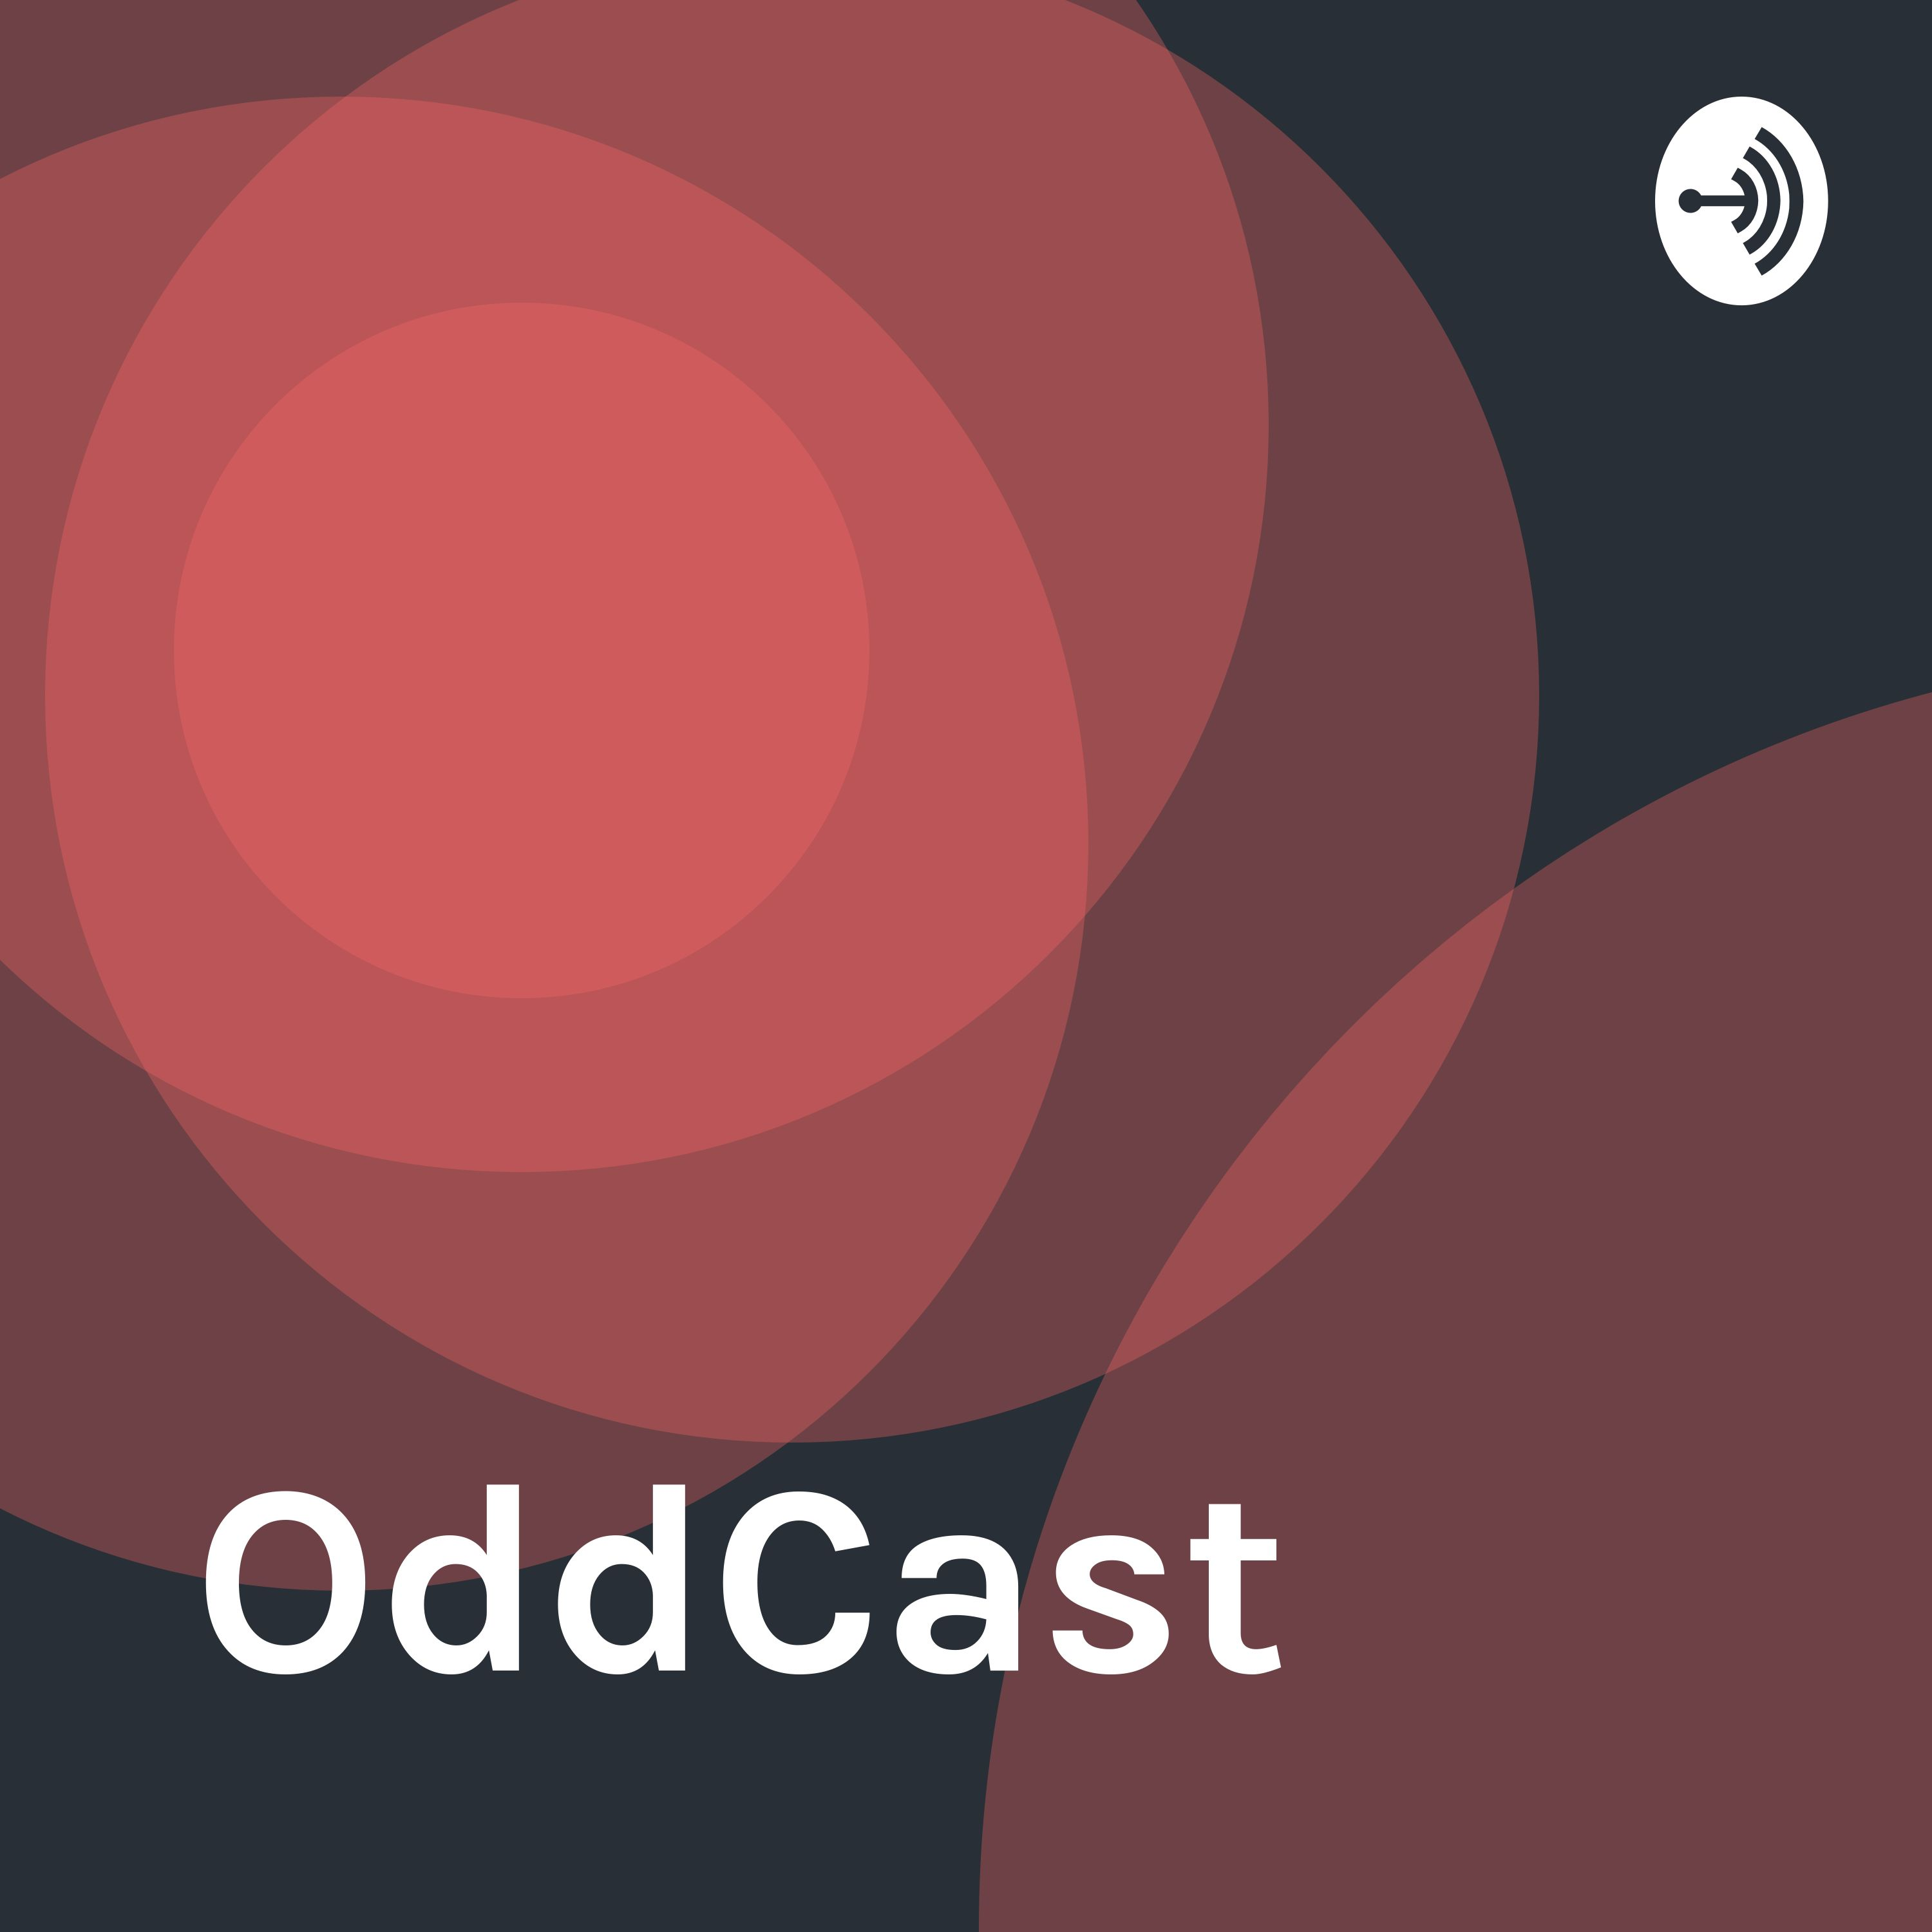 OddCast • A podcast on Anchor